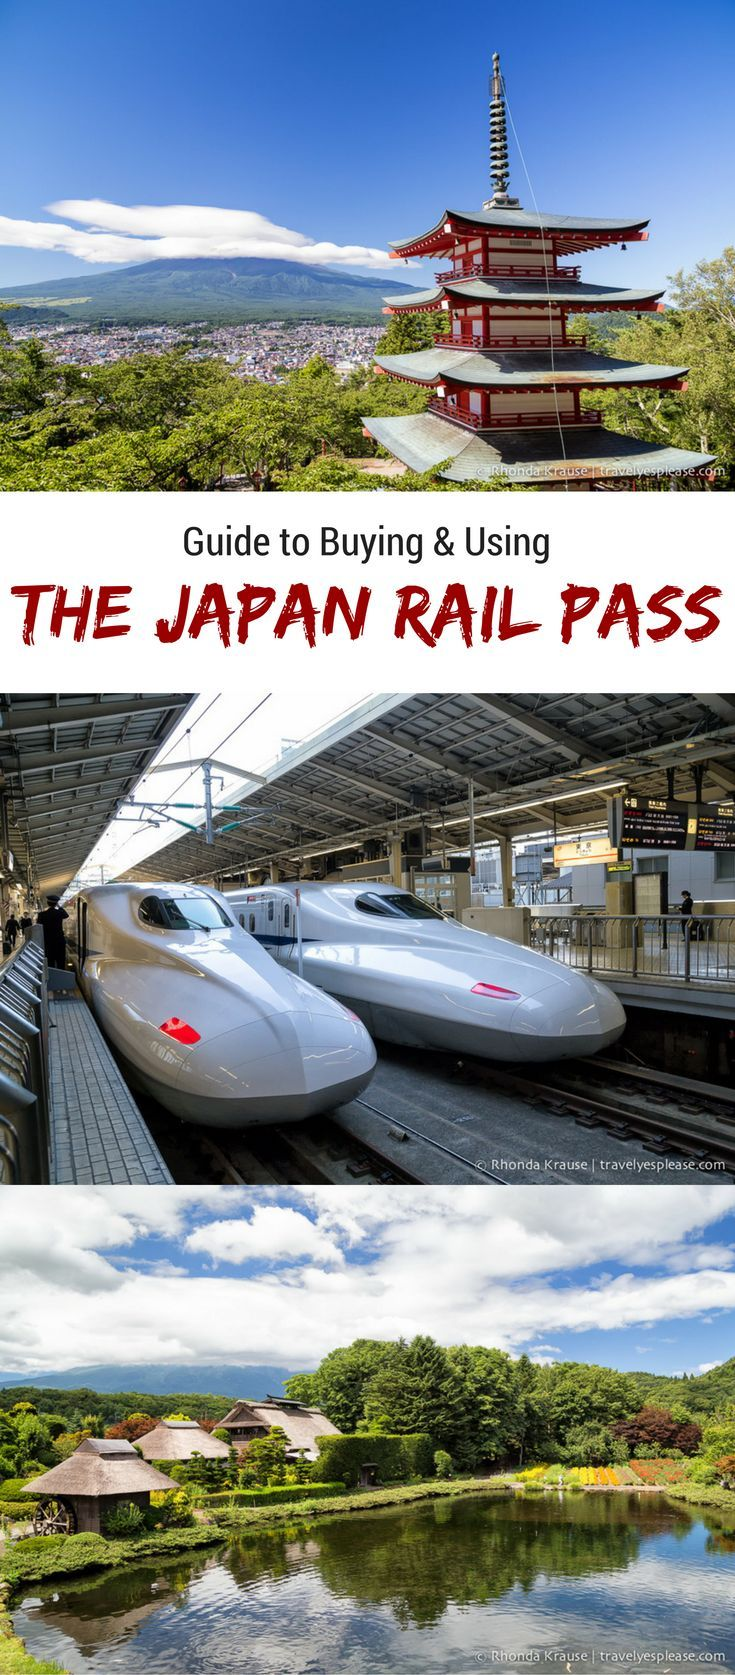 http://travelyesplease.com | Guide to Buying and Using the Japan Rail Pass (Blog Post)